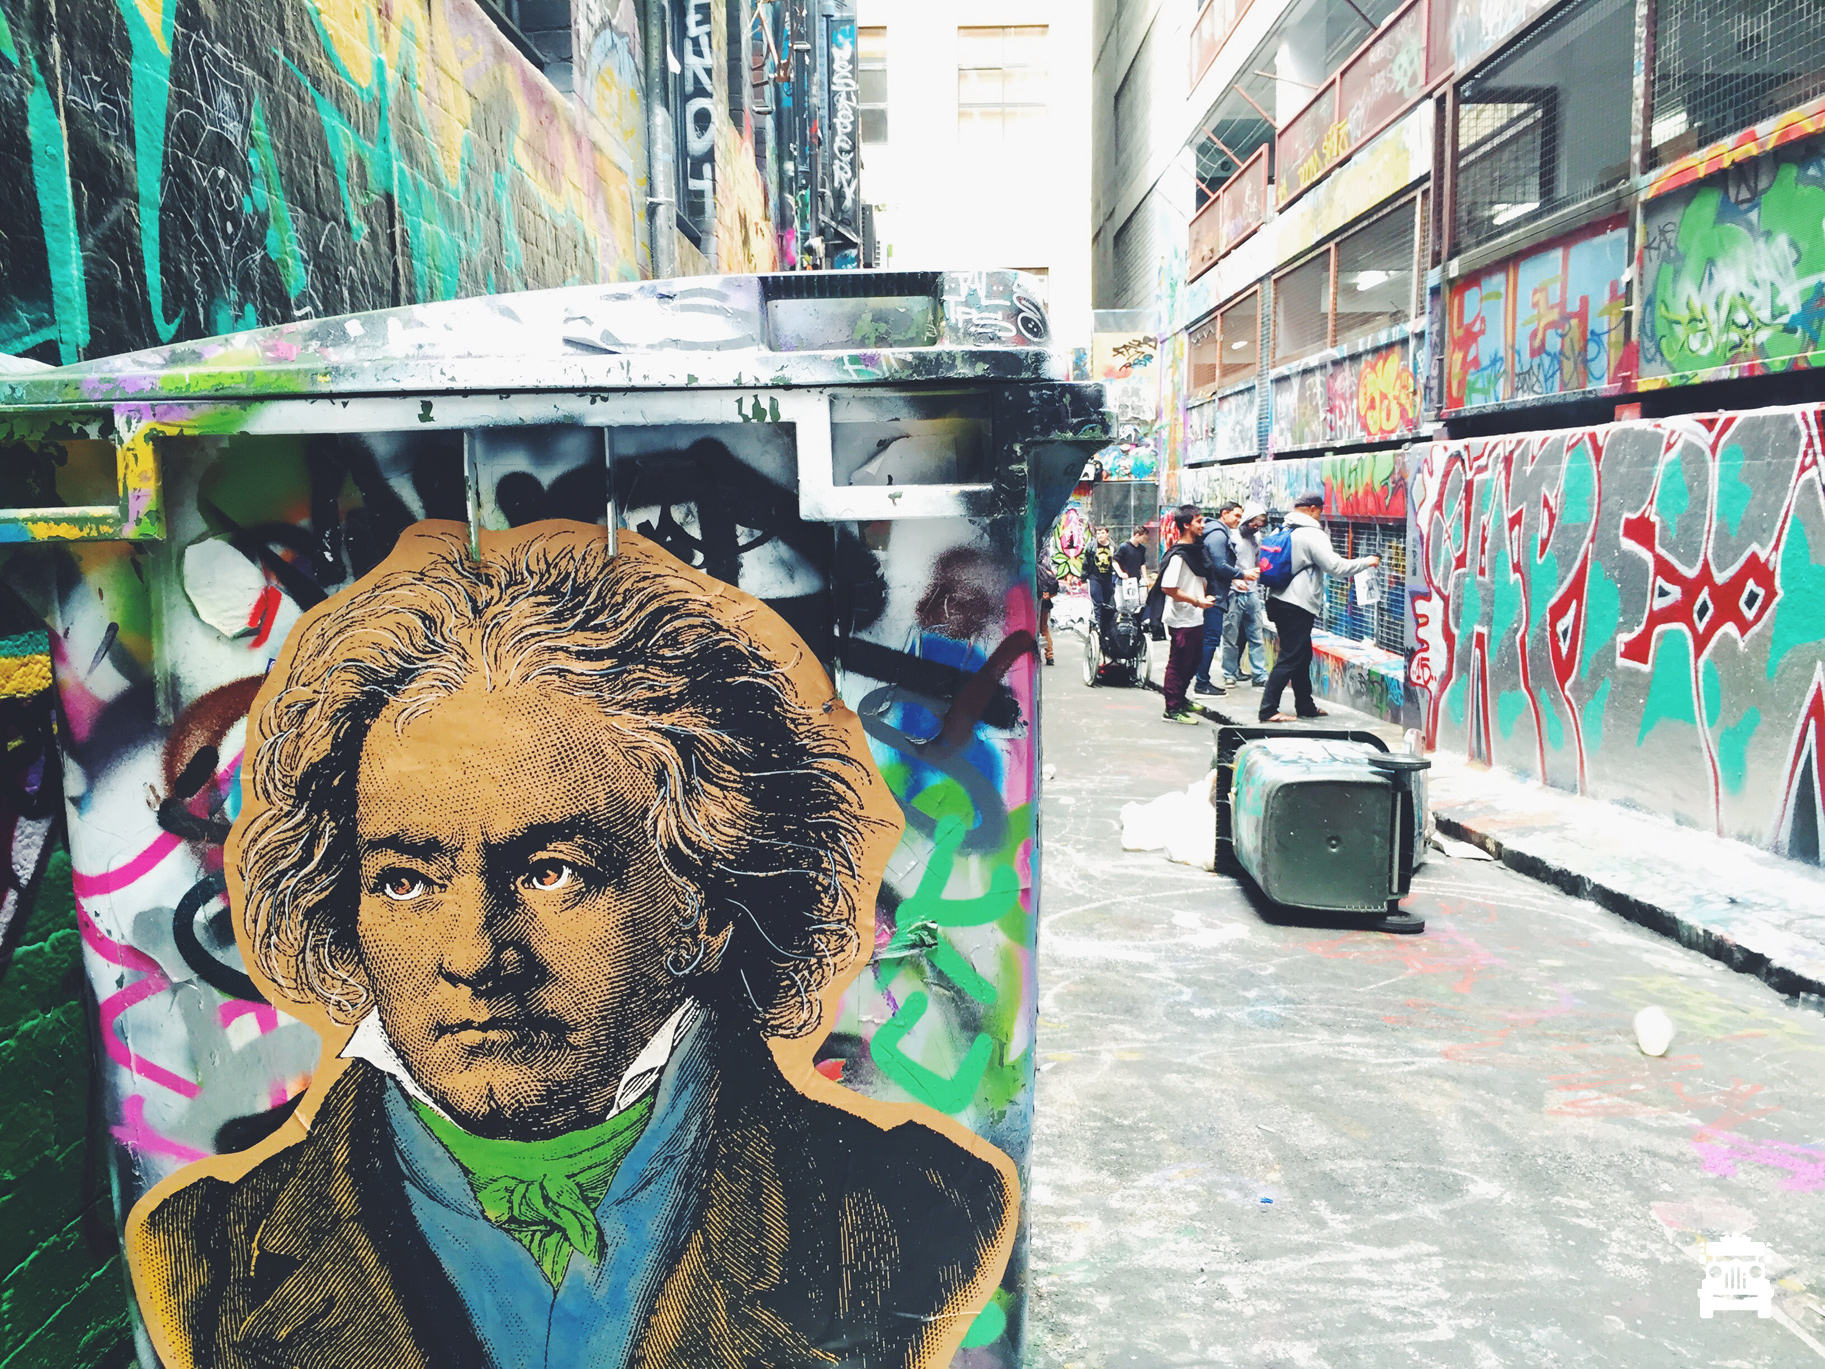 Hanging out with Beethoven?